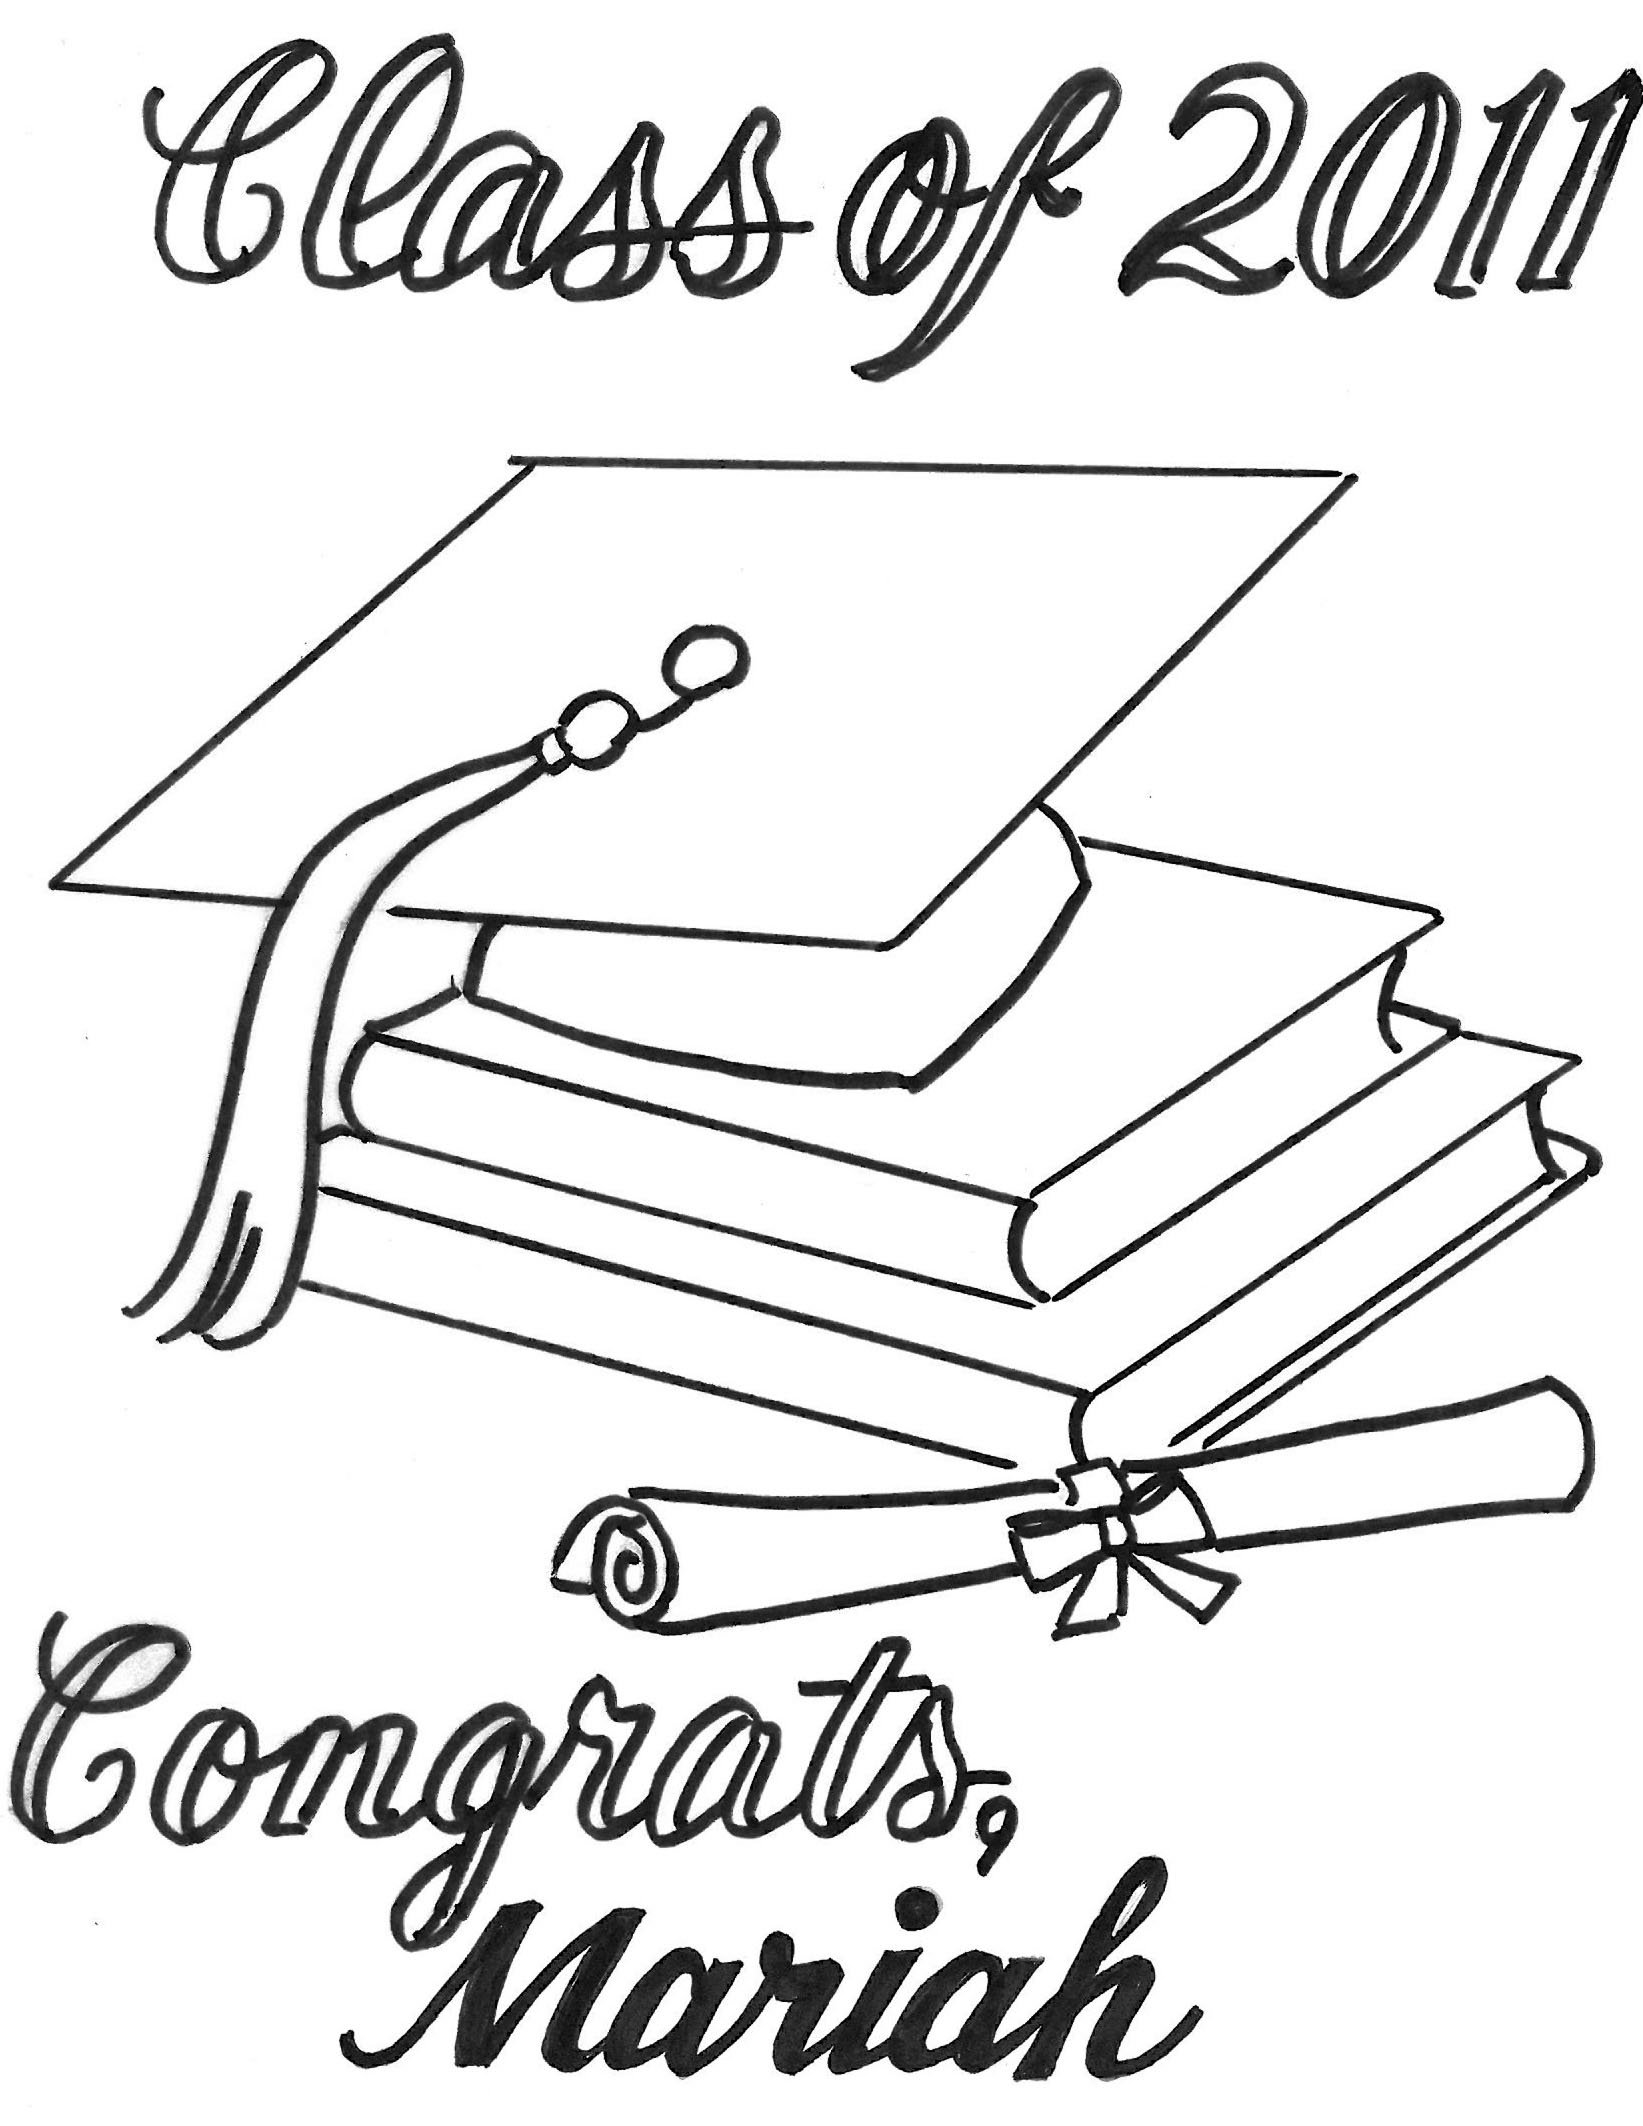 Free Graduation Drawing, Download Free Clip Art, Free Clip